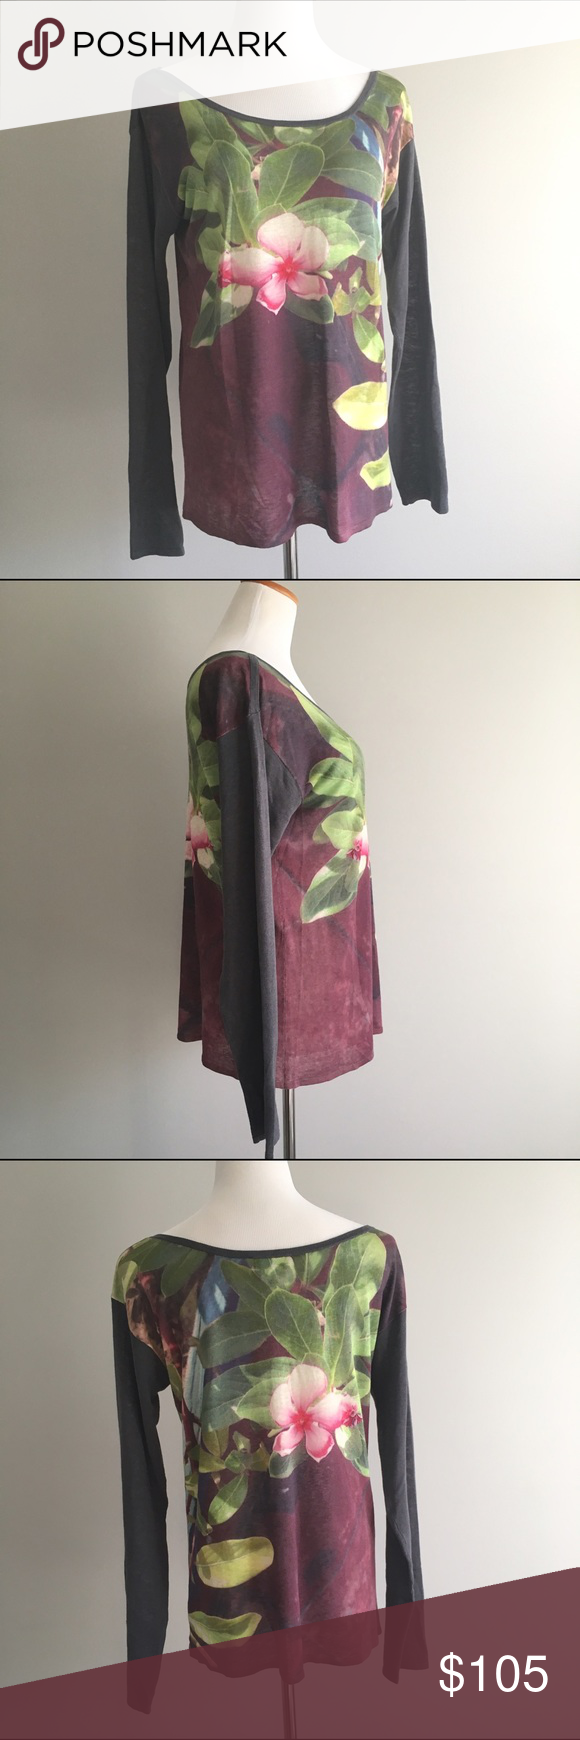 agnés b. Floral Long Sleeve Scoop Silk-Linen Top agnés b. Floral Long Sleeve Wide Scoop Neck Silk-Linen Top  Steely gray sleeves and trim contrast with the green, pink, and wine-colored floral print of this long sleeve agnés b. top. EUC. Size 3 = large. Thin, lightweight material blend.  55% silk 45% linen  Hand wash agnés b. Tops